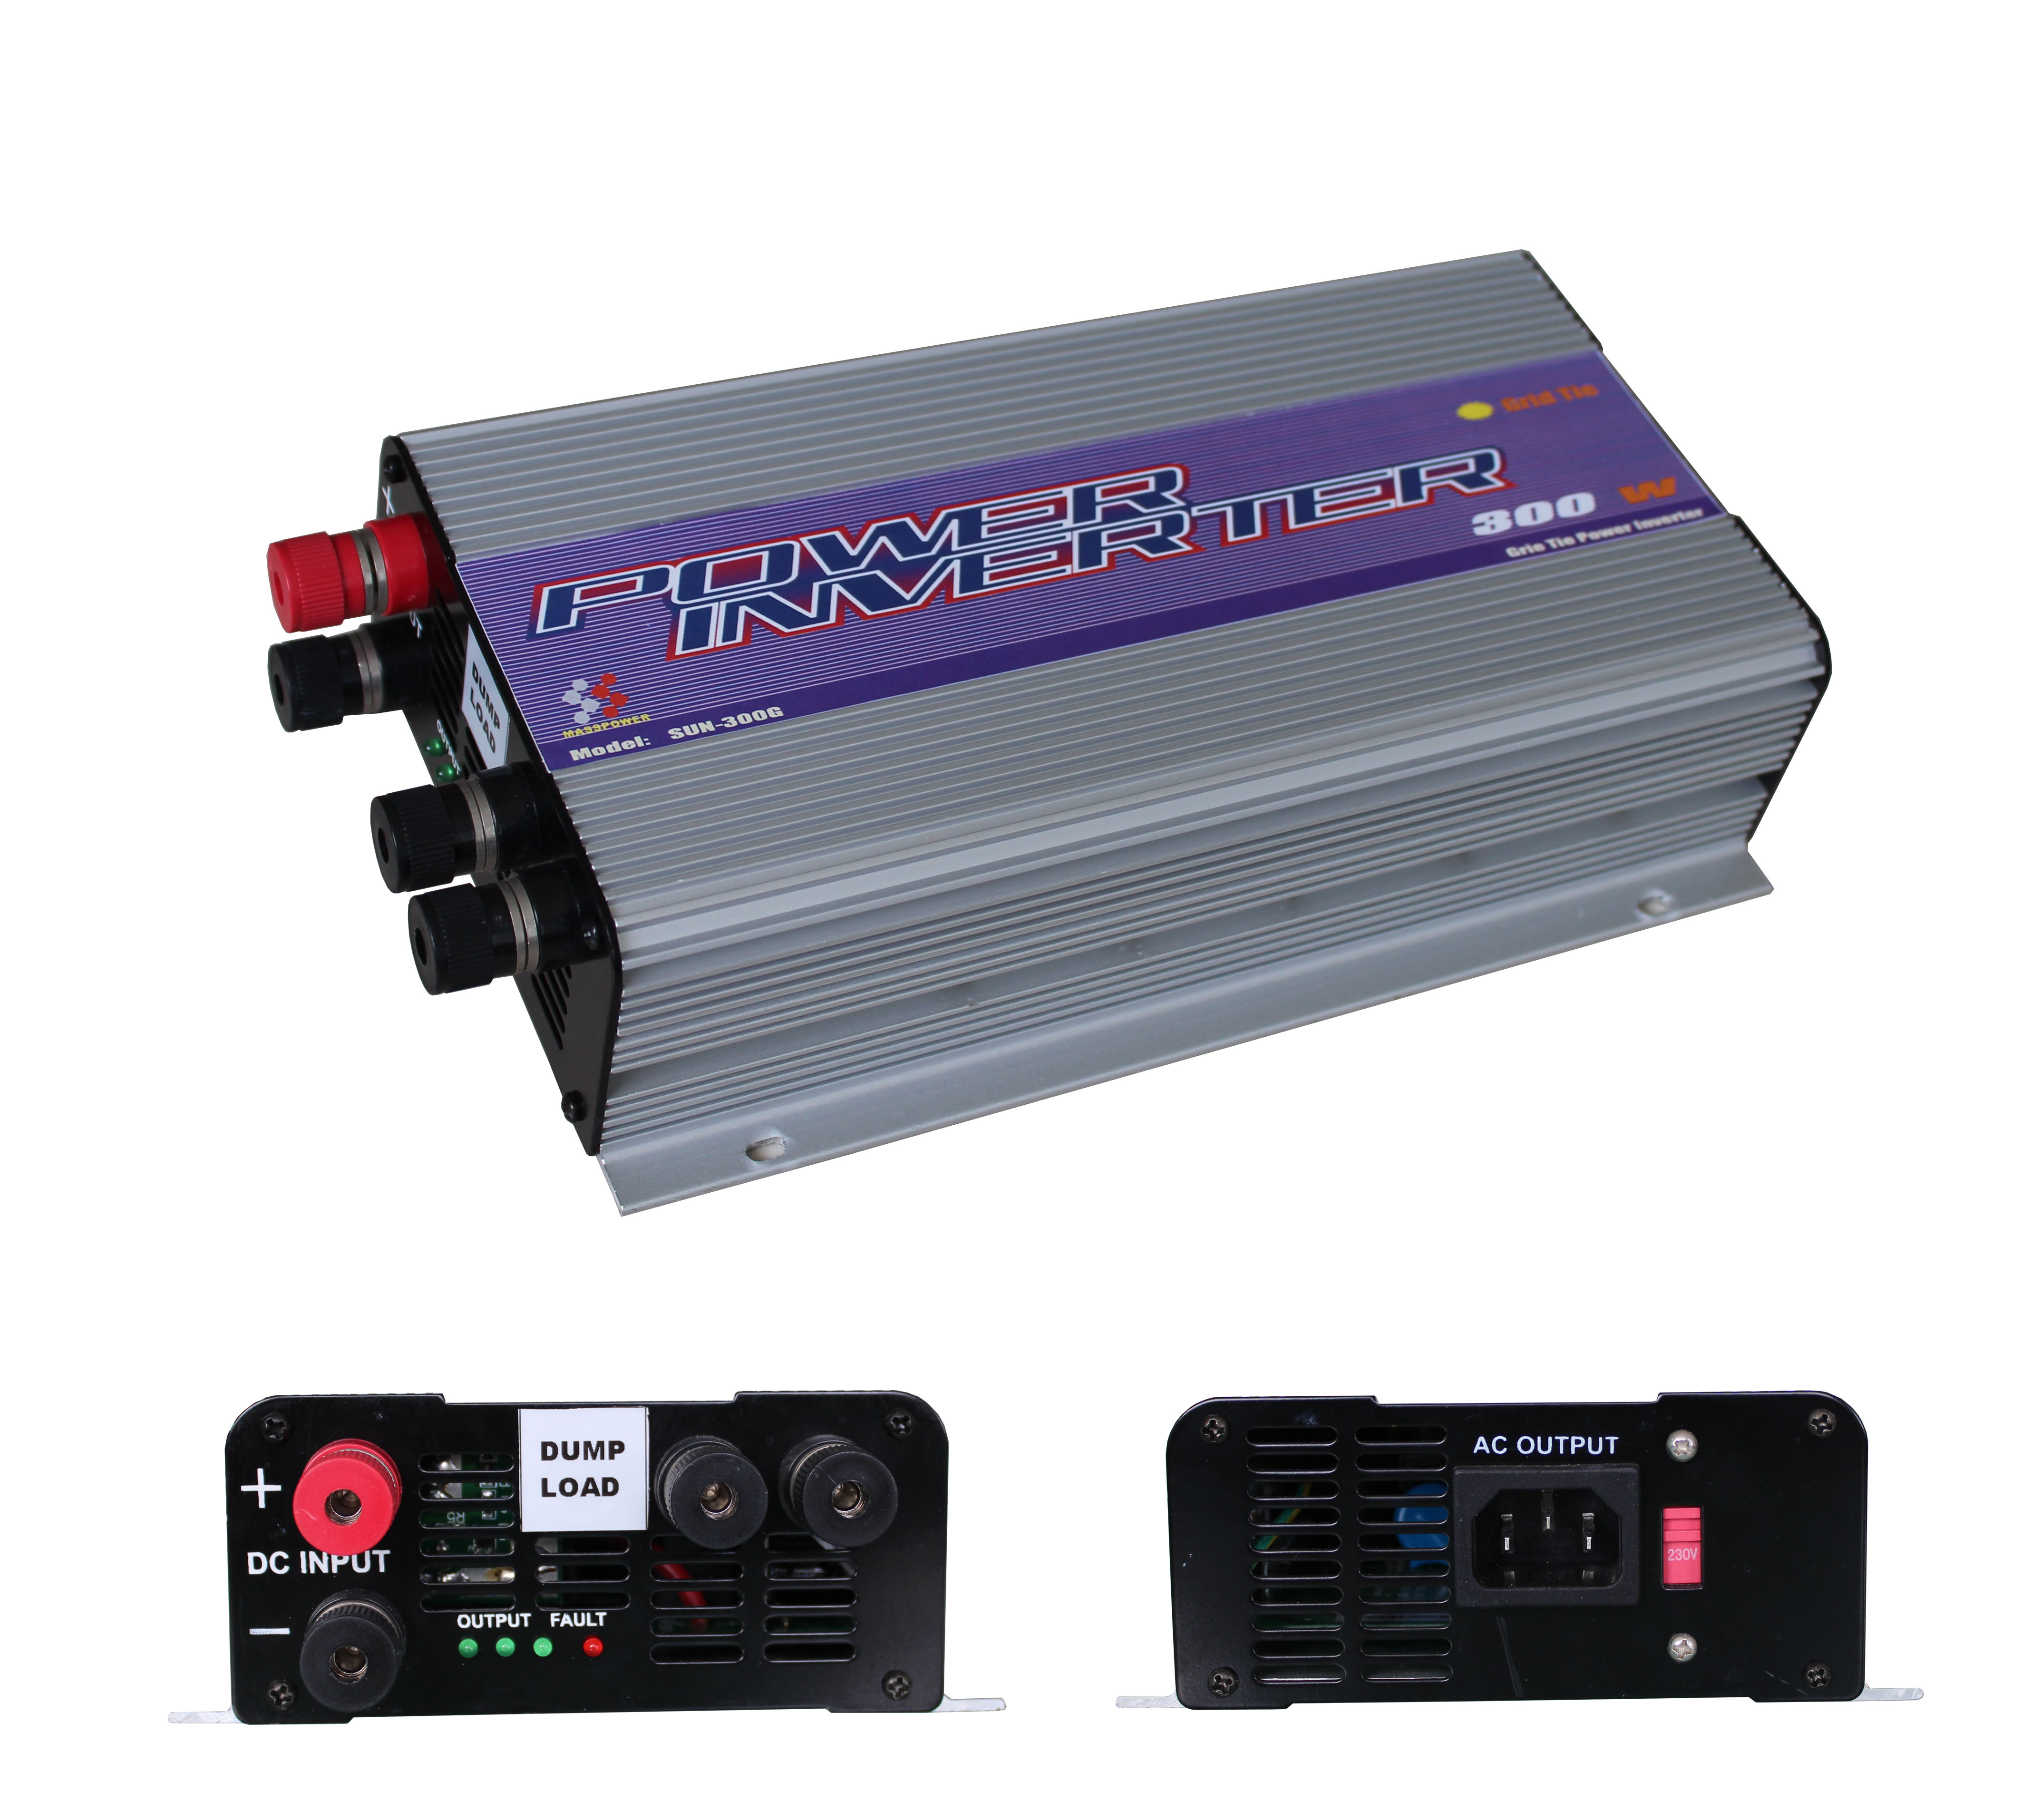 SUN-300G-WDL Wind power grid tie inverter/300w